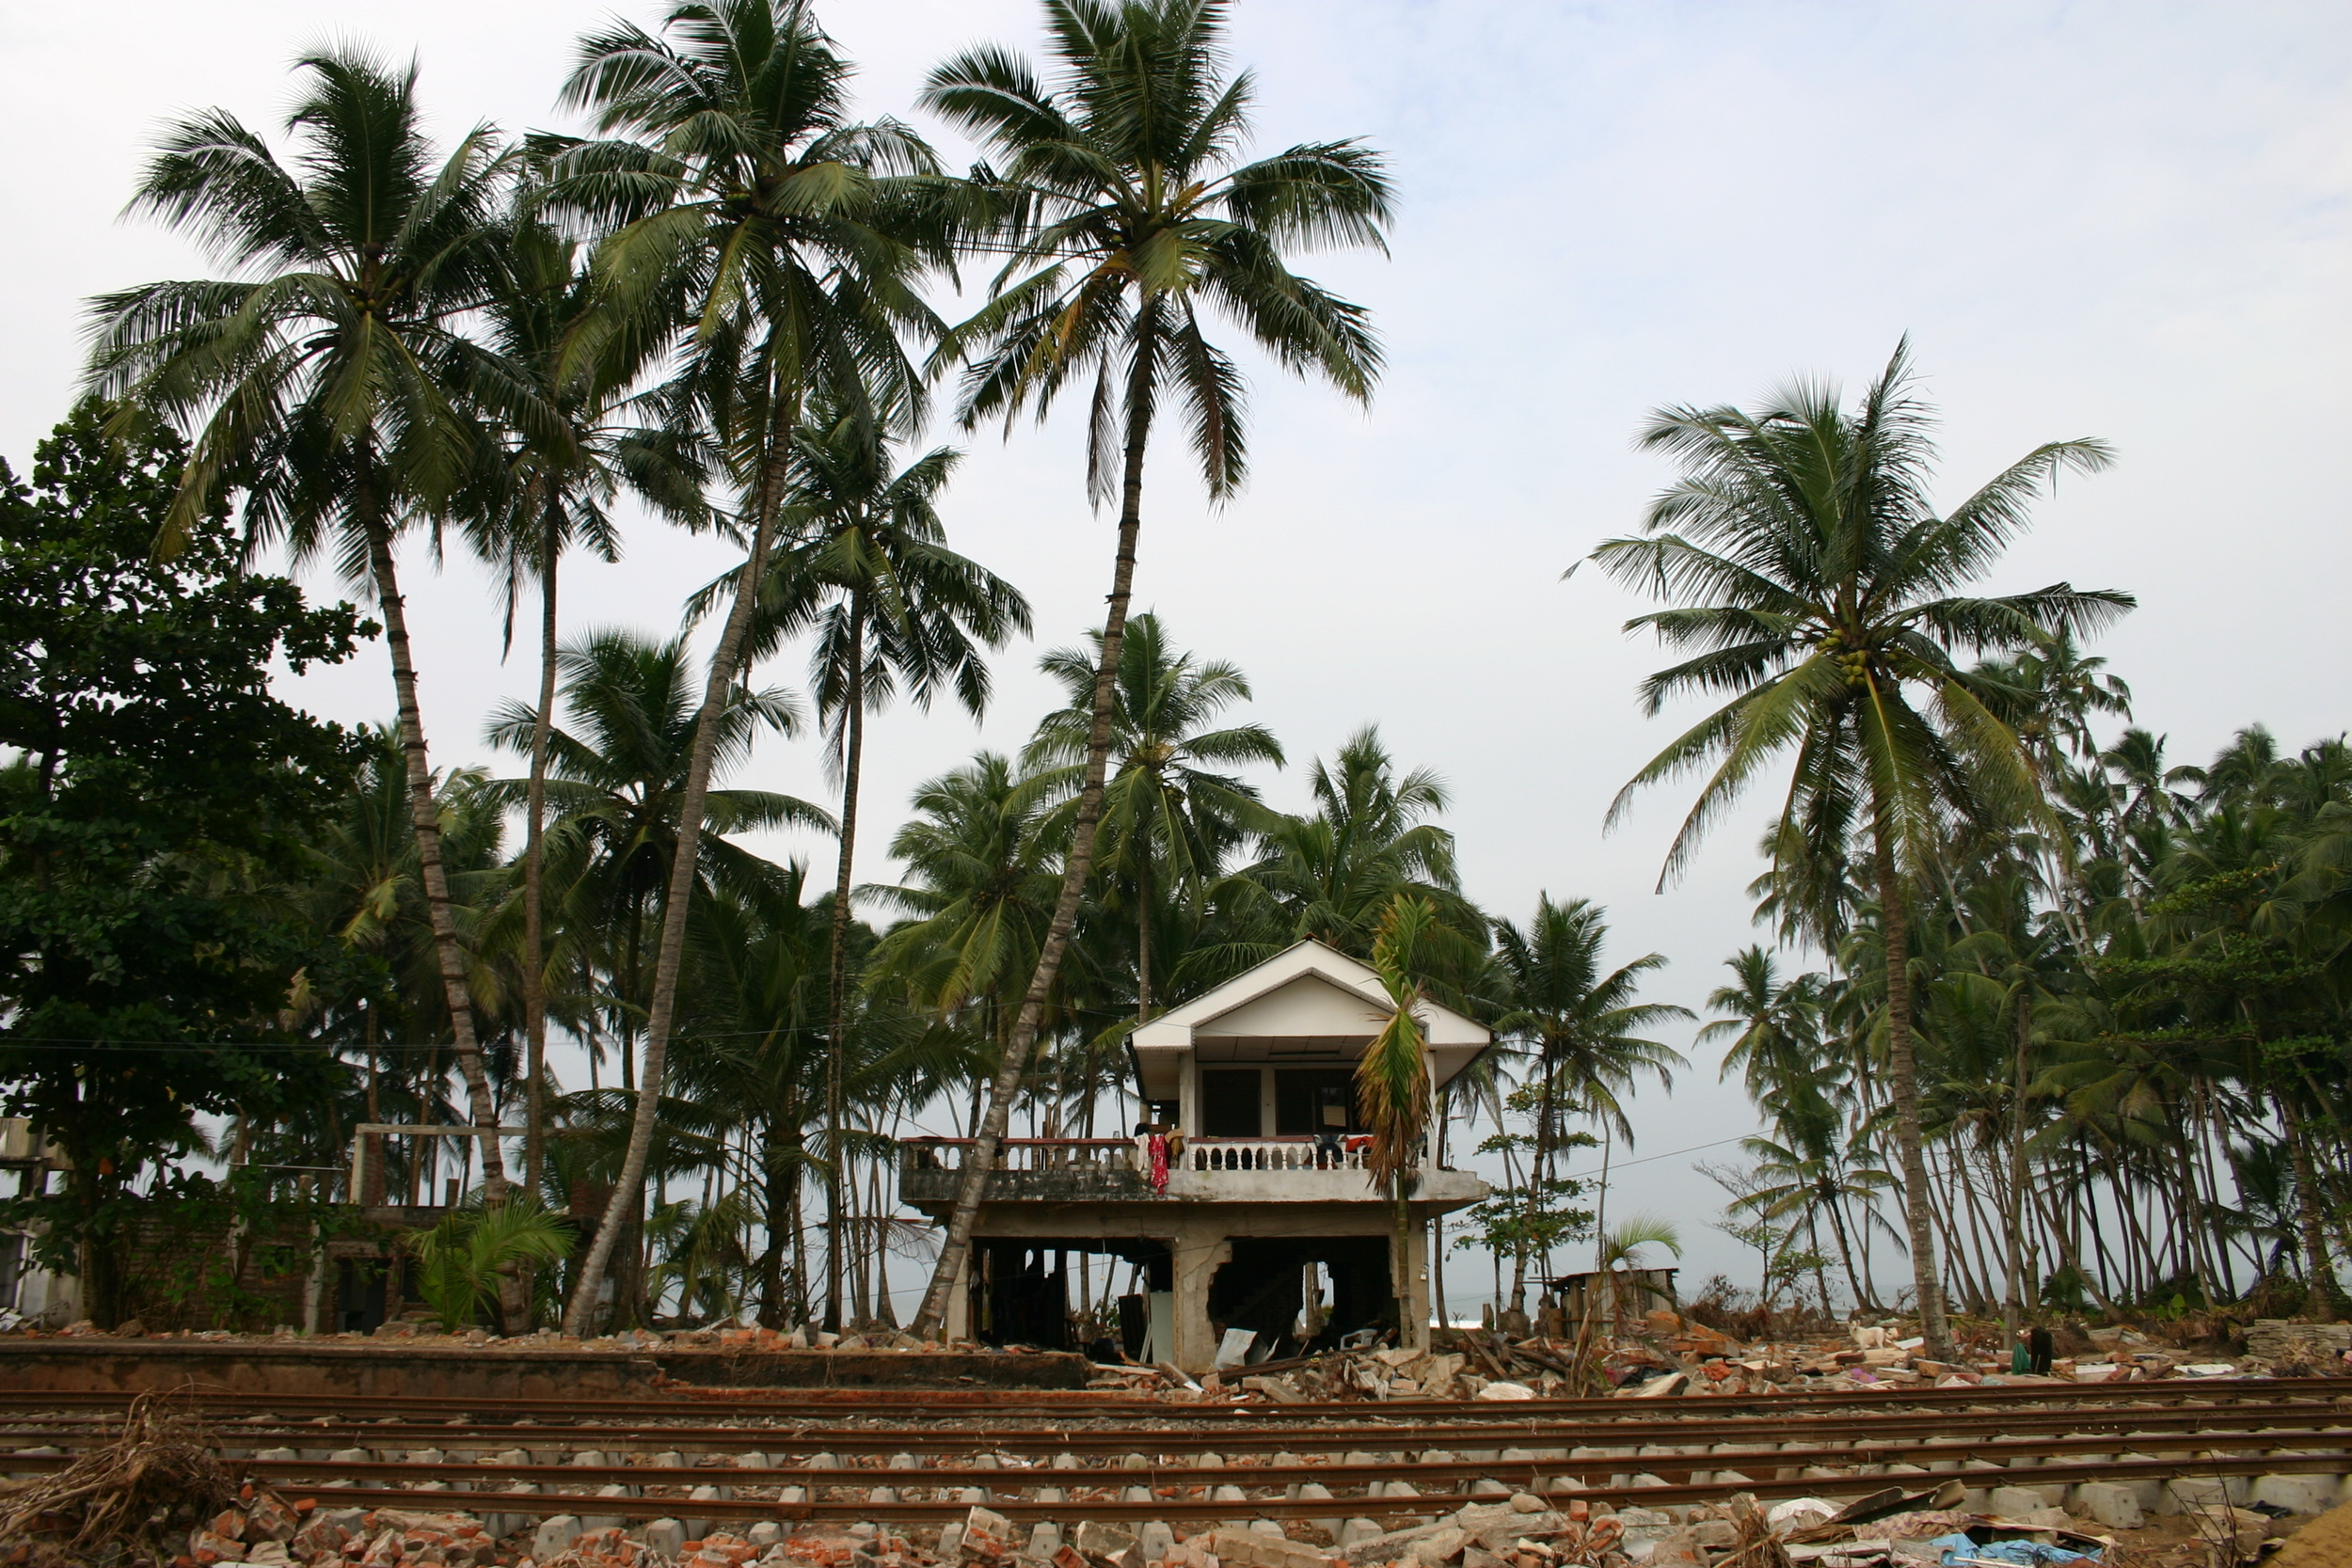 January 2005: Galle